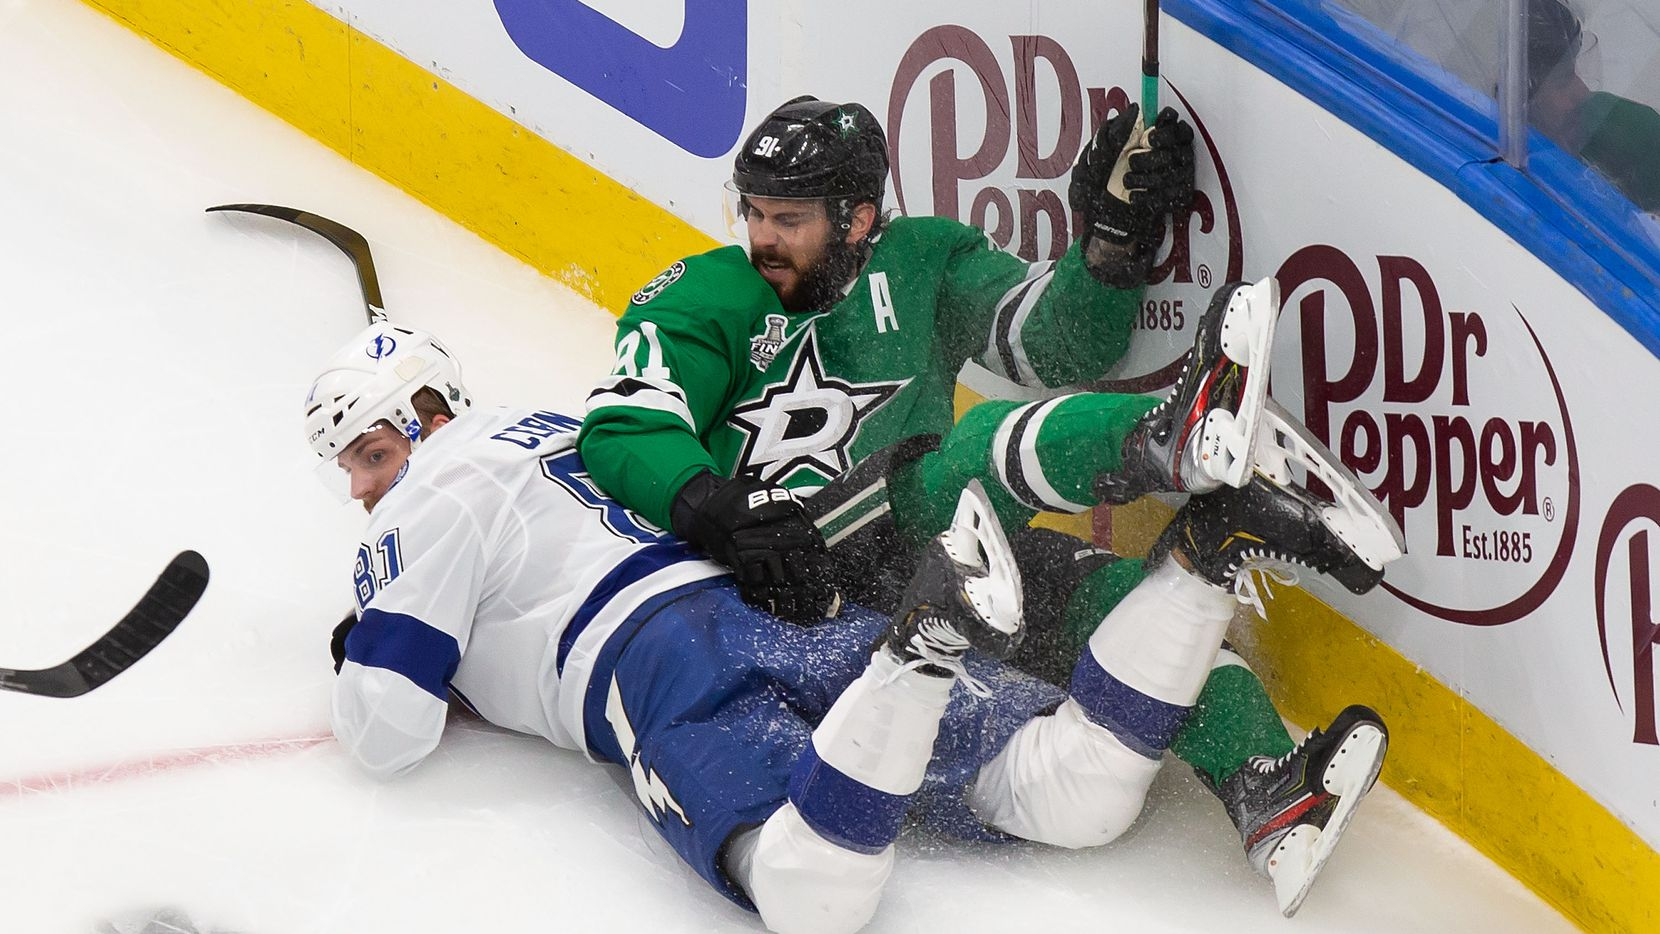 Tyler Seguin (91) of the Dallas Stars collides with Erik Cernak (81) of the Tampa Bay Lightning during Game Six of the Stanley Cup Final at Rogers Place in Edmonton, Alberta, Canada on Monday, September 28, 2020.